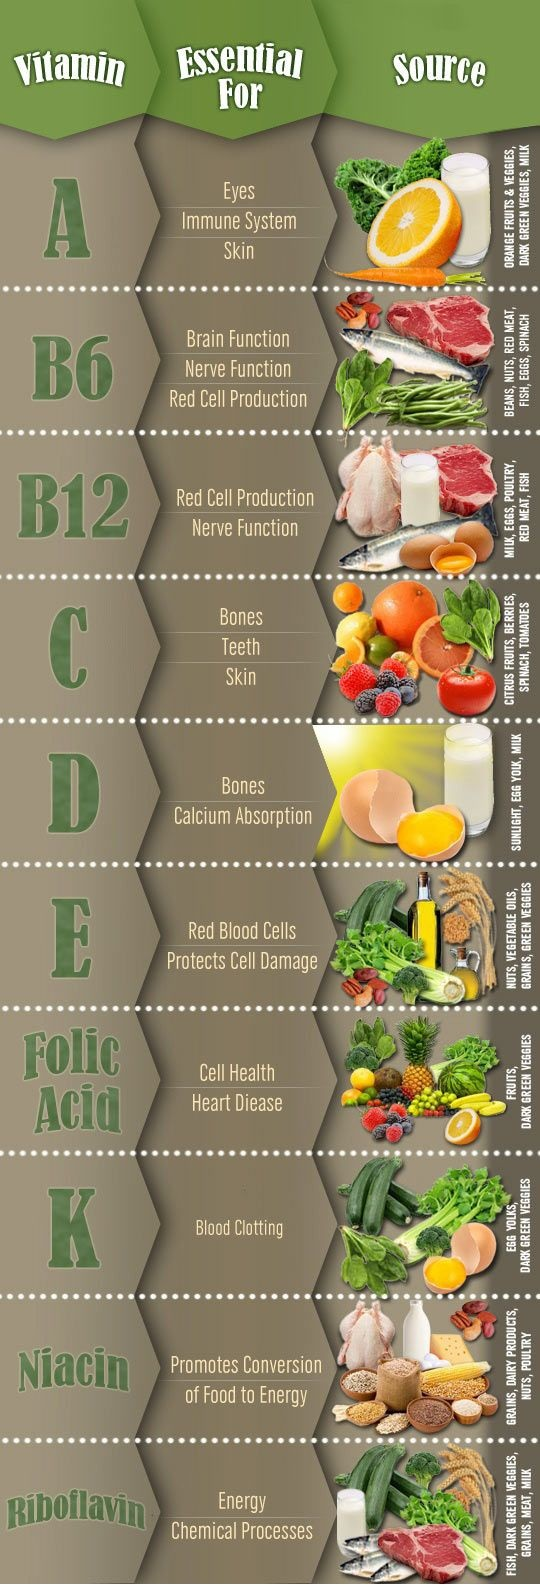 What Vitamins Are Good For